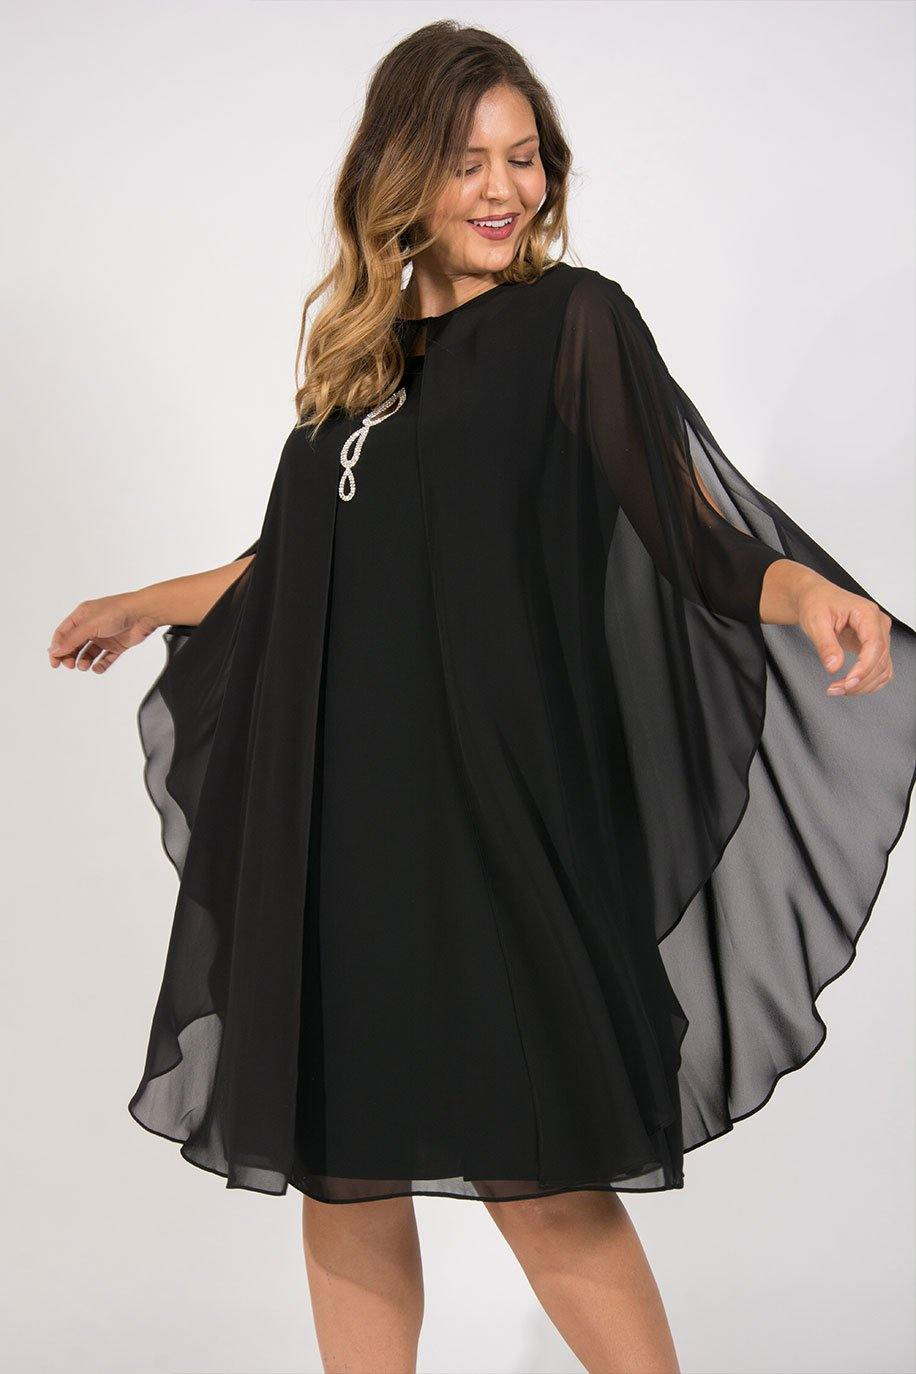 719a23f47de ... SL Fashion Short Plus Size Formal Black Tie Cape Dress - The Dress  Outlet 14W SL ...